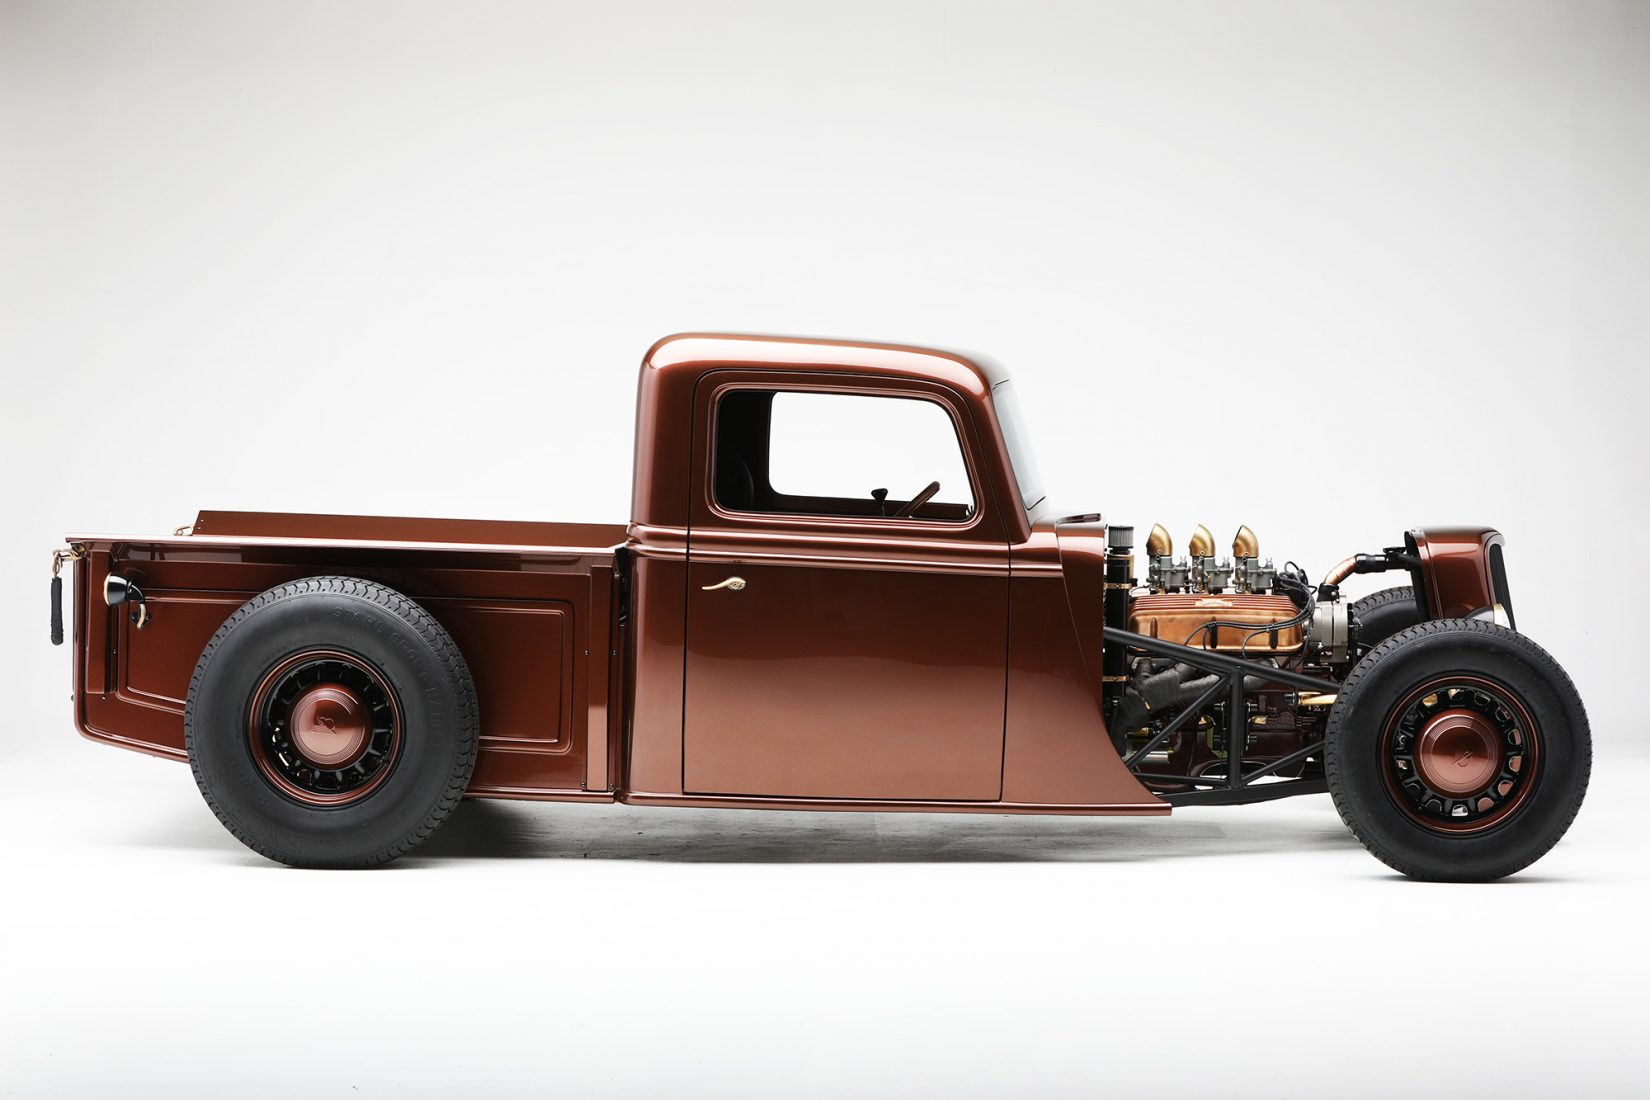 factory fives hot rod truck available end of first quarter 2018 2018 02 27_18 44 50_635179 factory five's '35 hot rod truck available to order soon